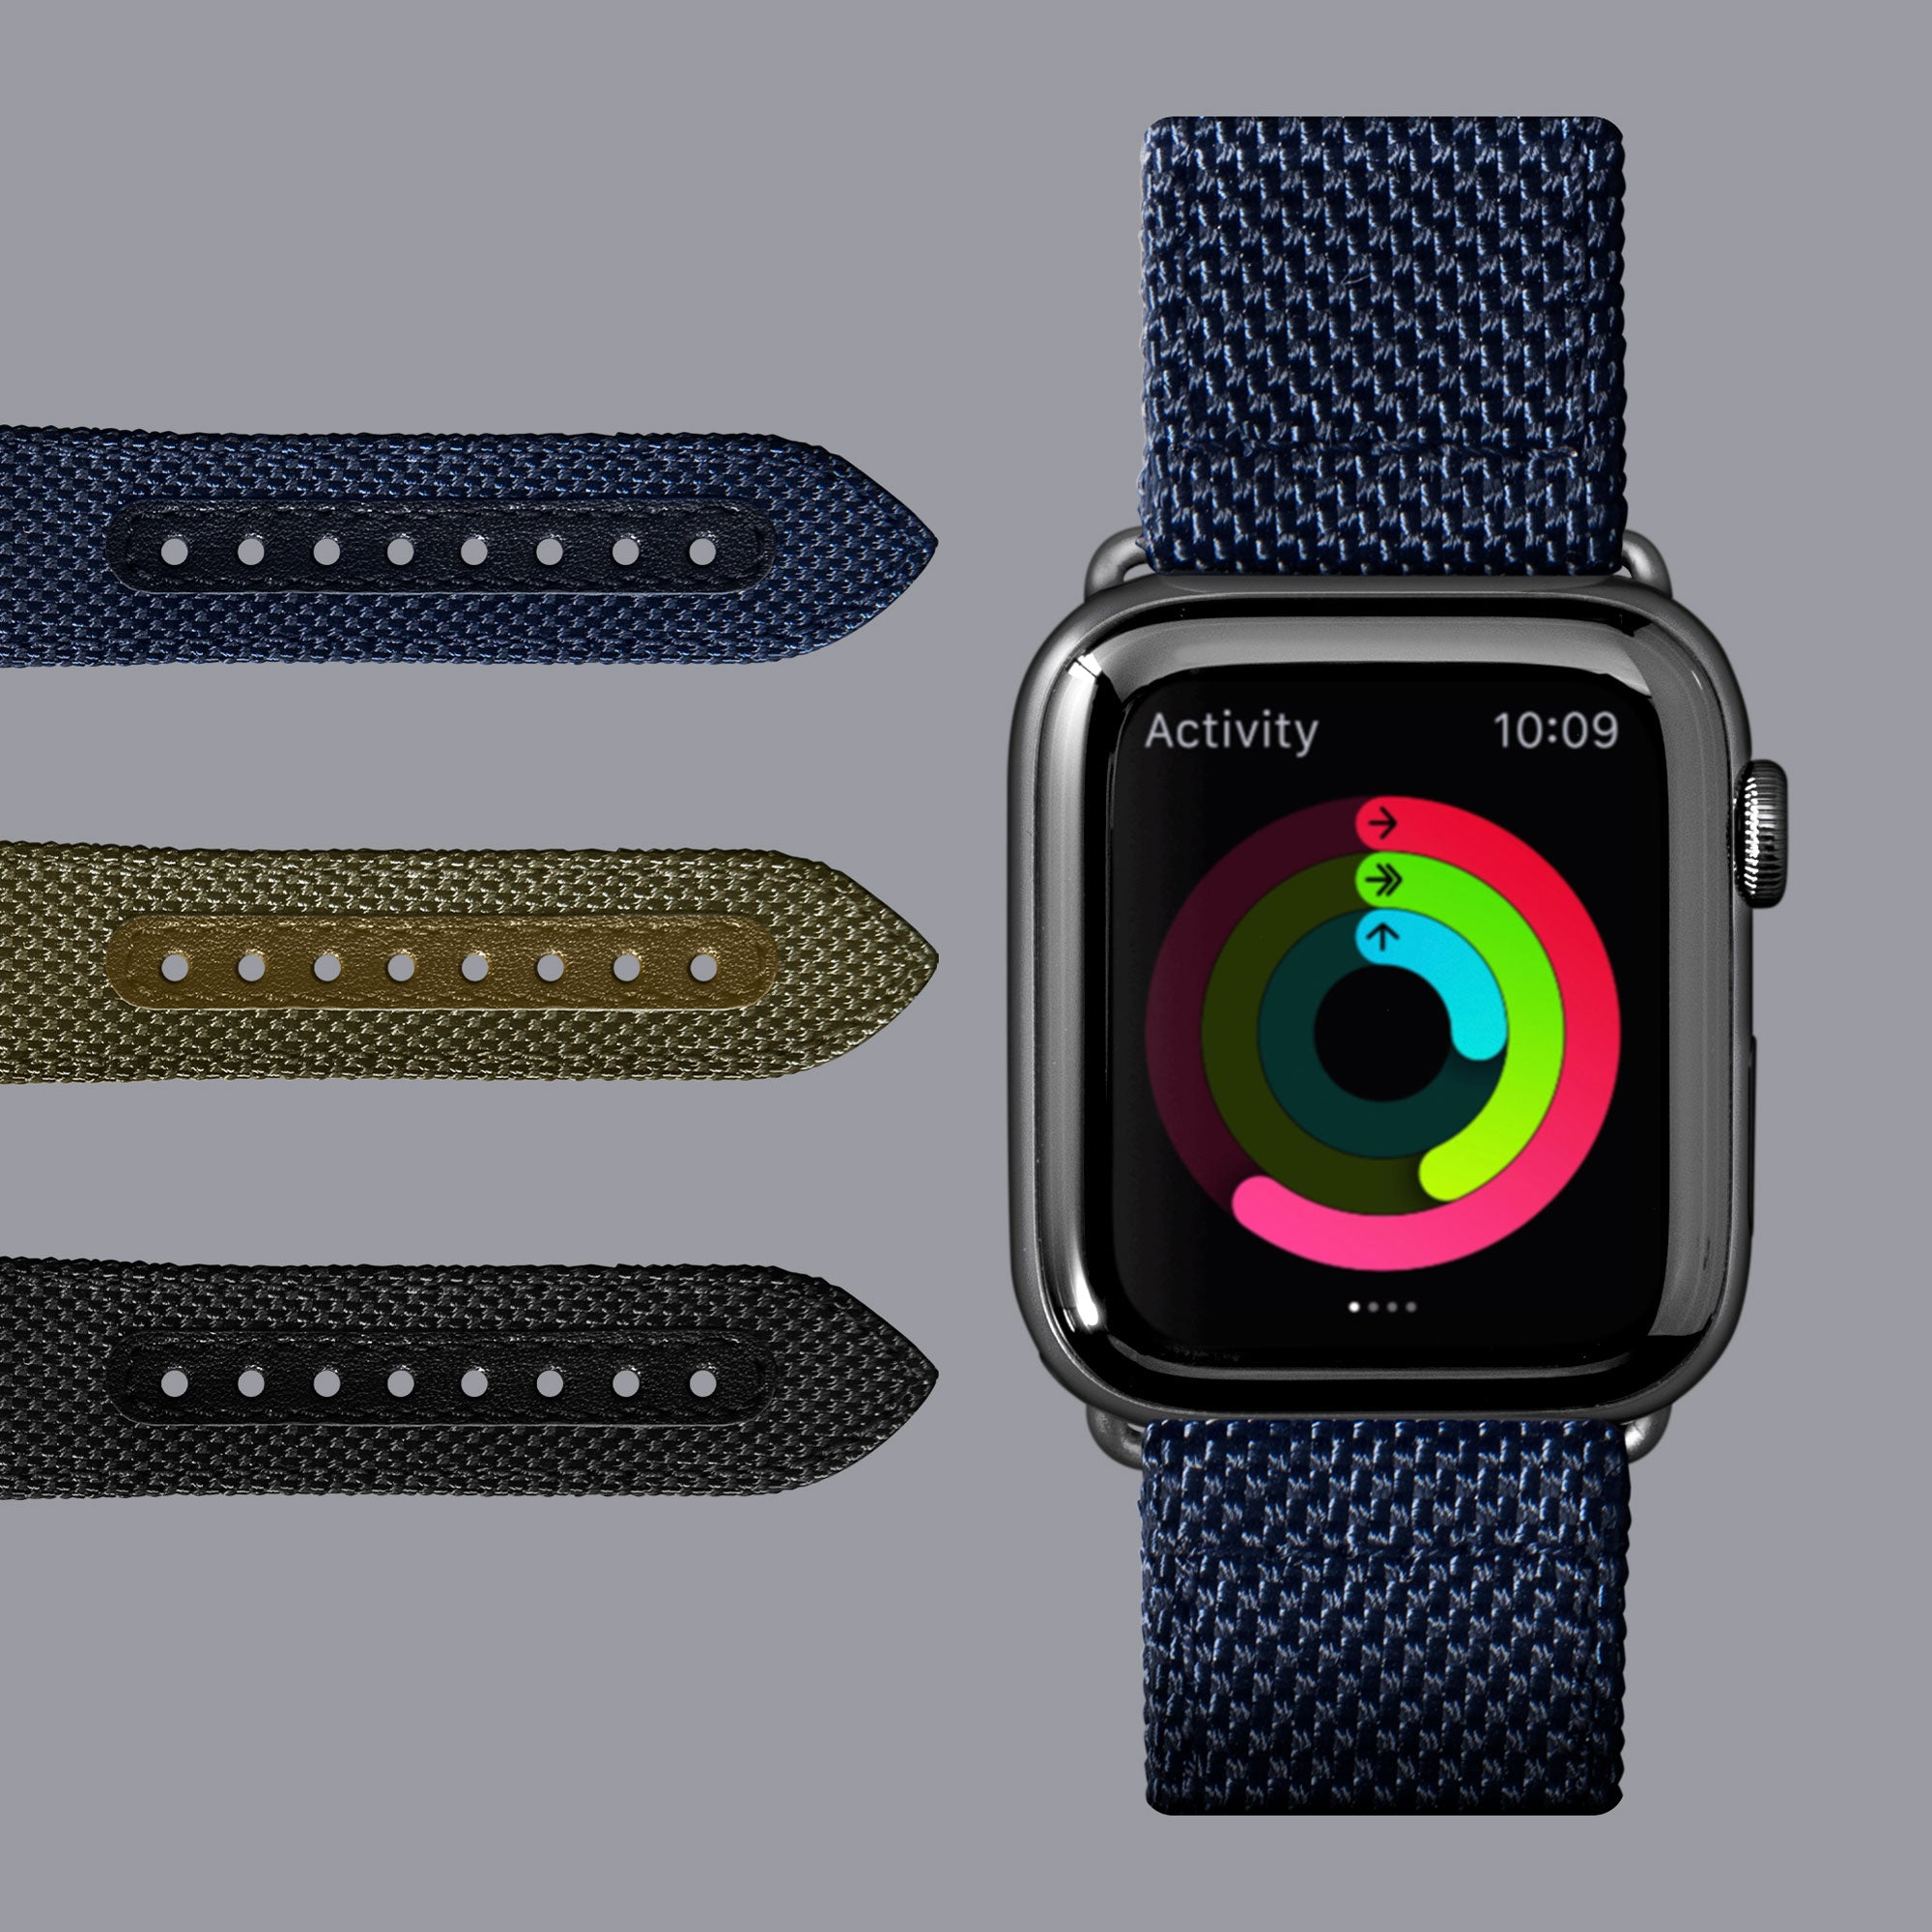 LAUT-Technical 2.0 Watch Strap for Apple Watch Series 1/2/3/4/5-Watch Strap-For Apple Watch Series 1/2/3/4/5